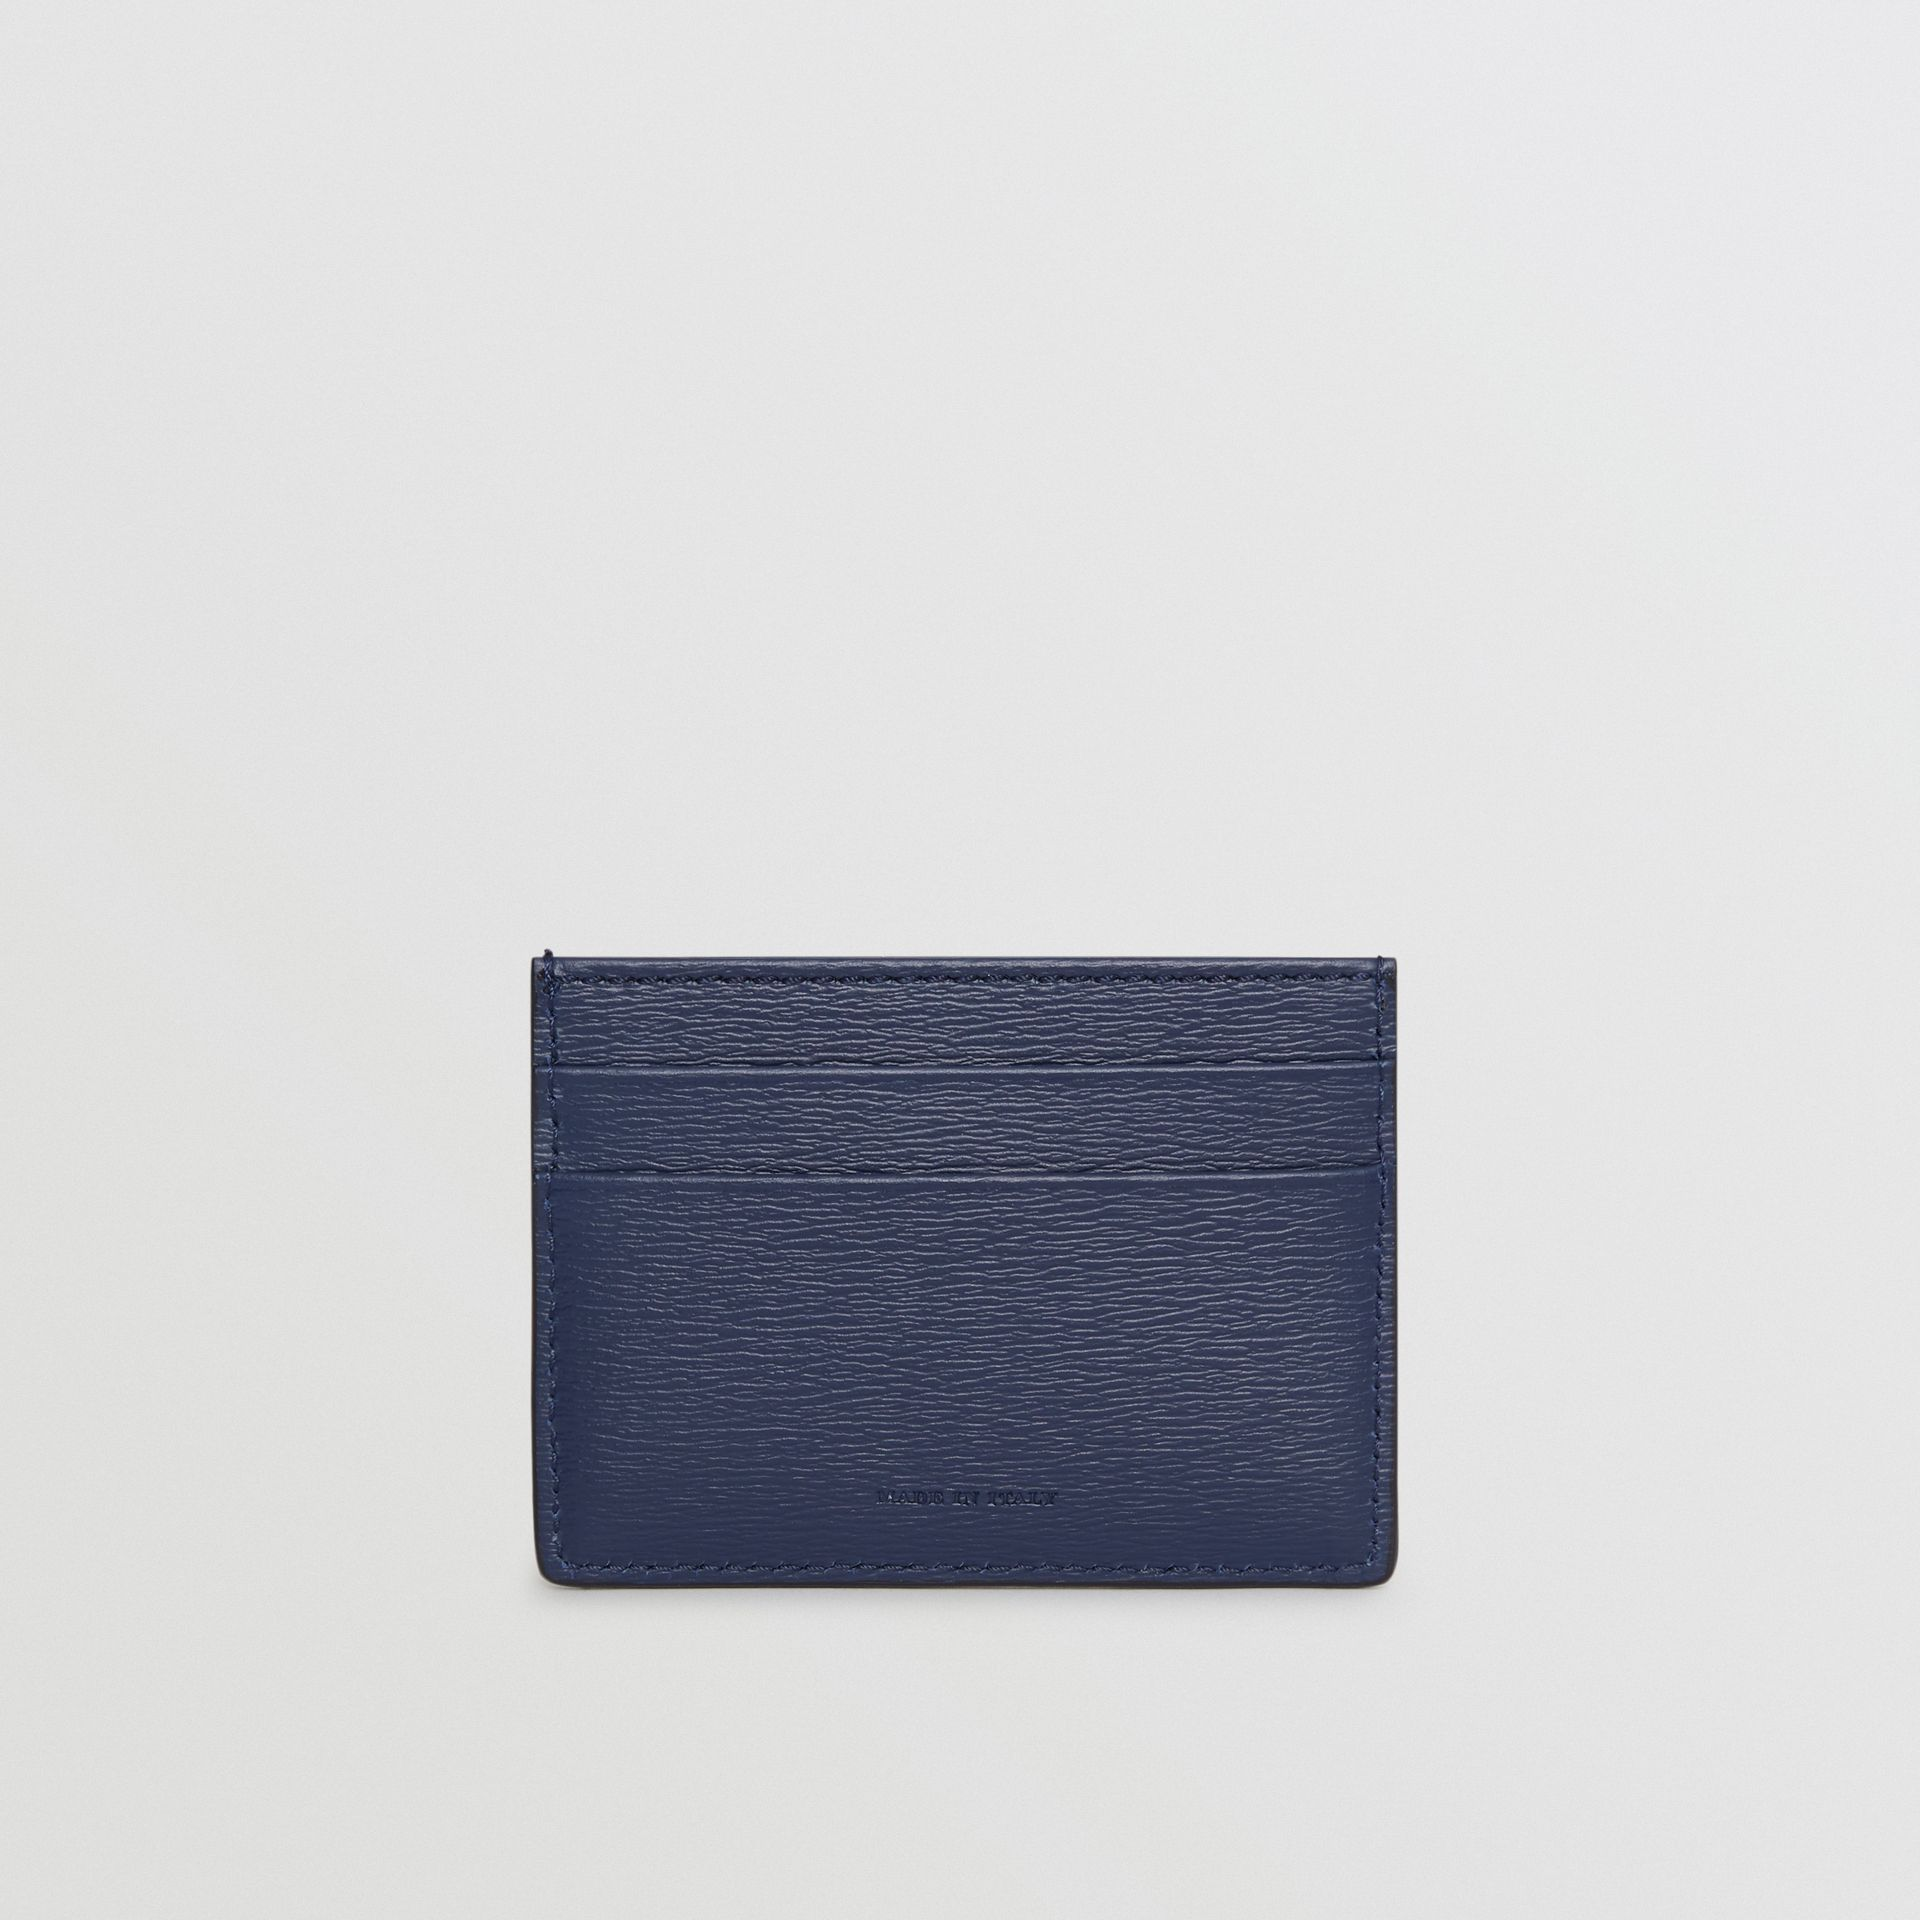 London Leather Card Case in Navy - Men | Burberry Canada - gallery image 4